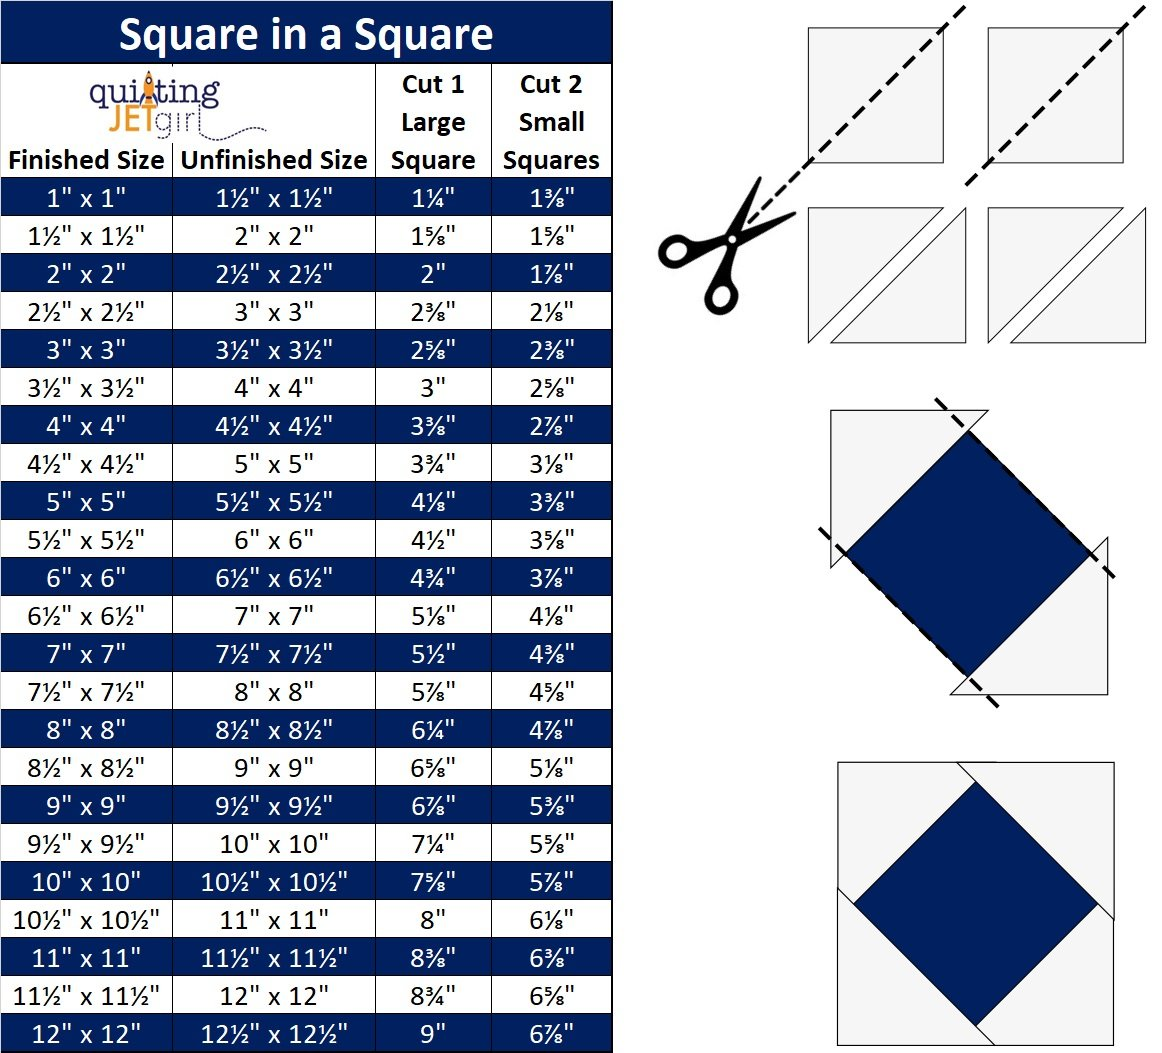 Square in a Square Table